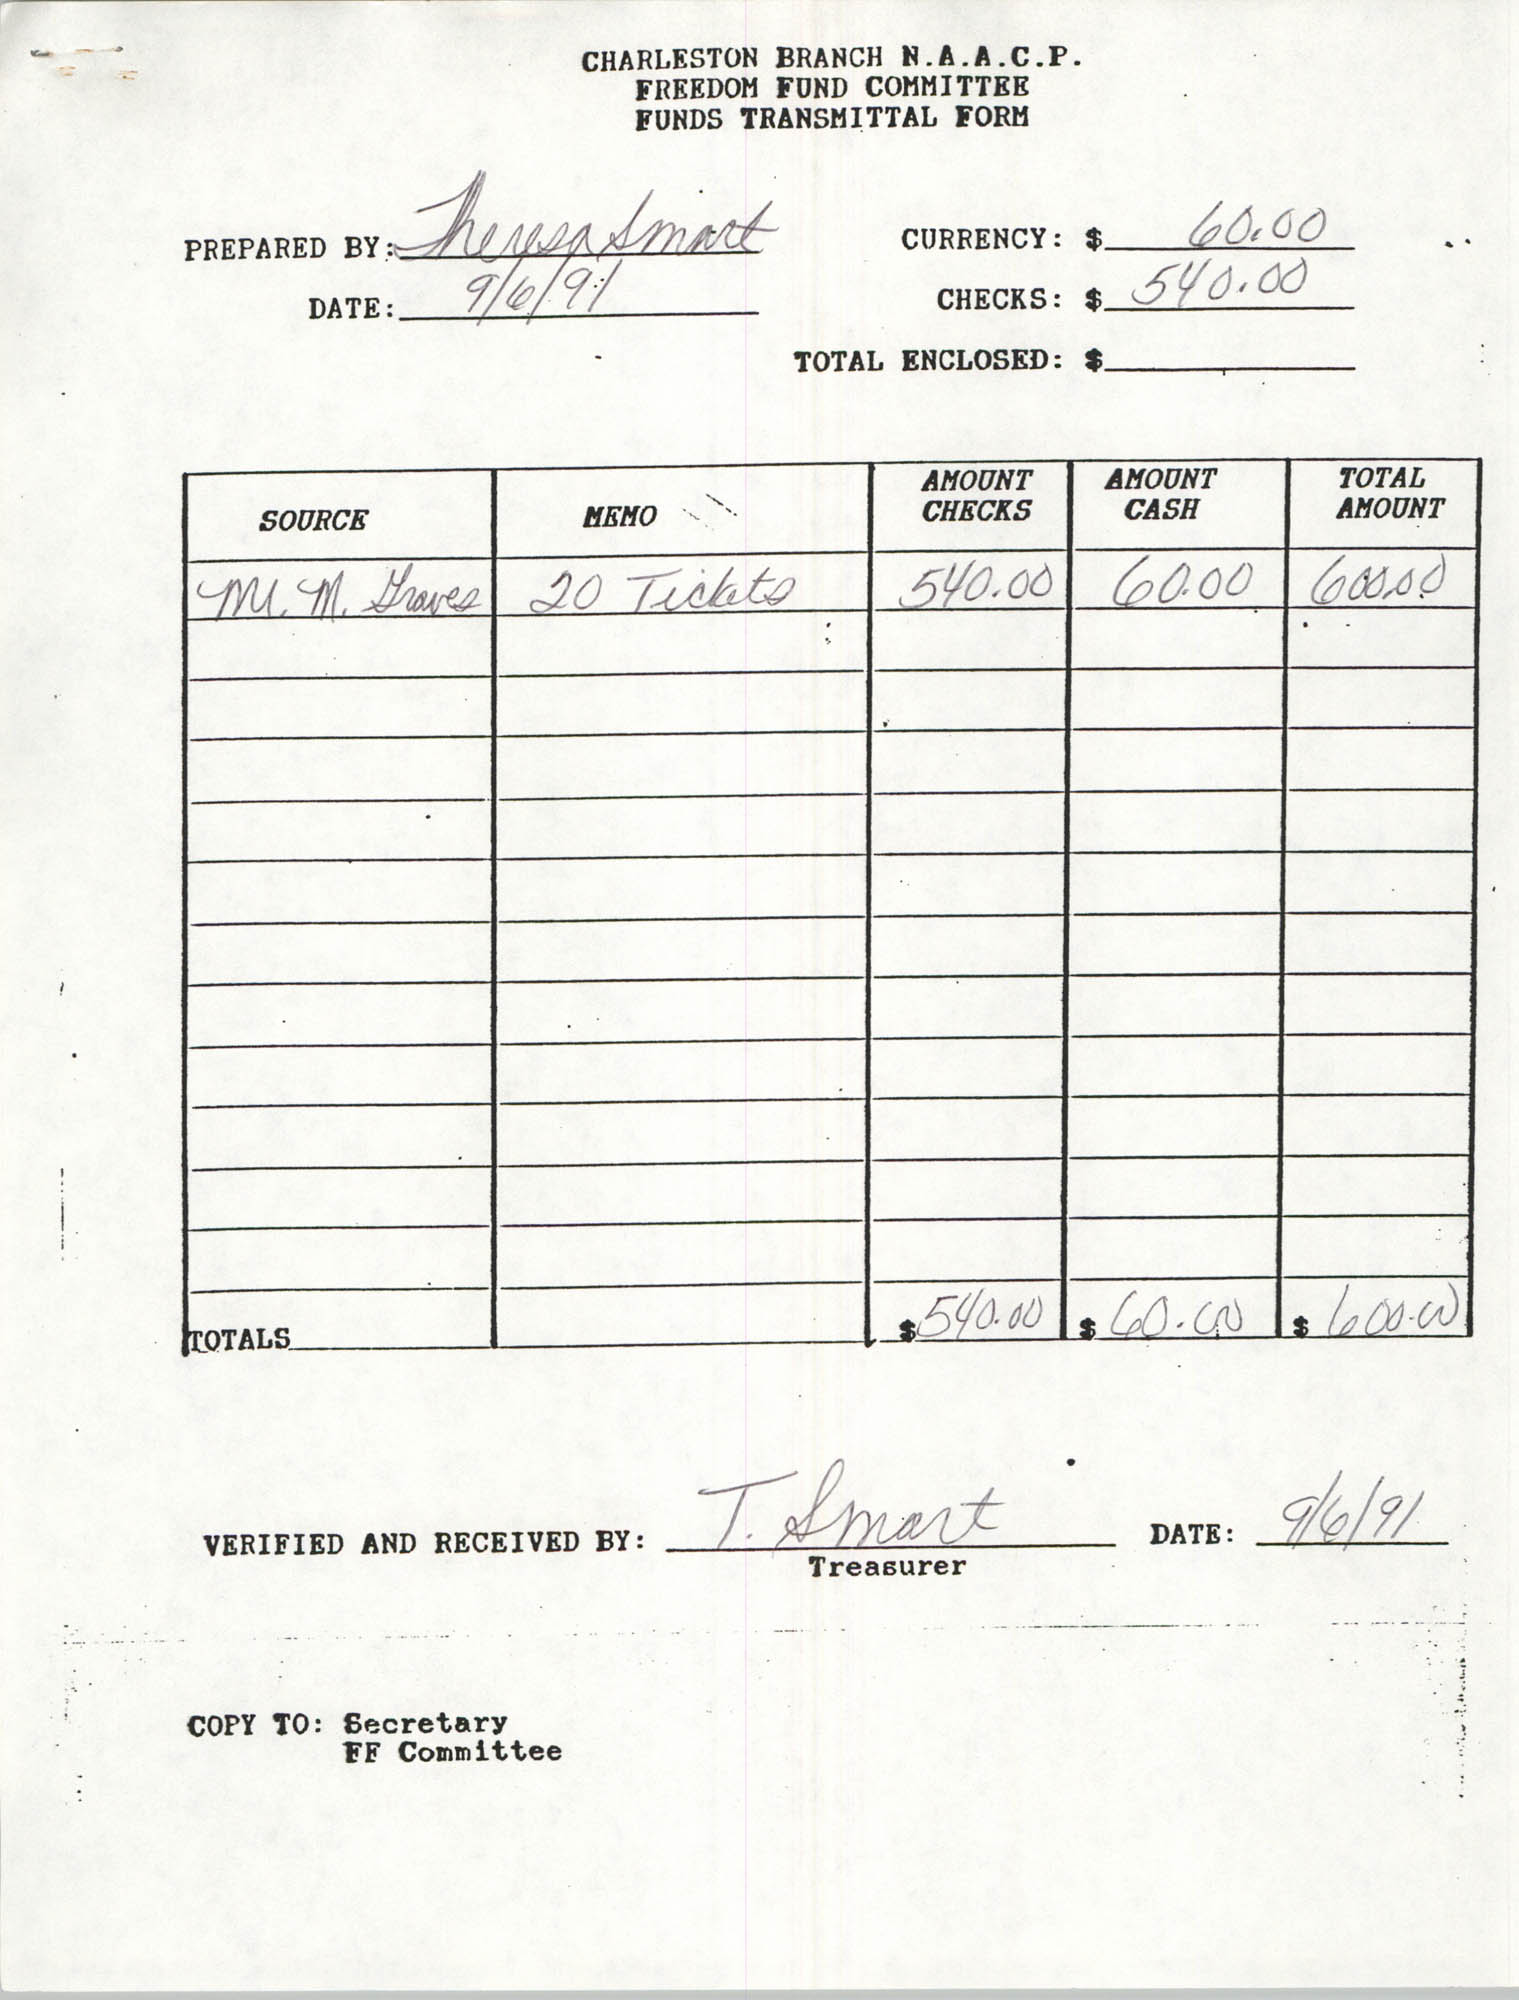 Charleston Branch of the NAACP Funds Transmittal Forms, September 1991, Page 12